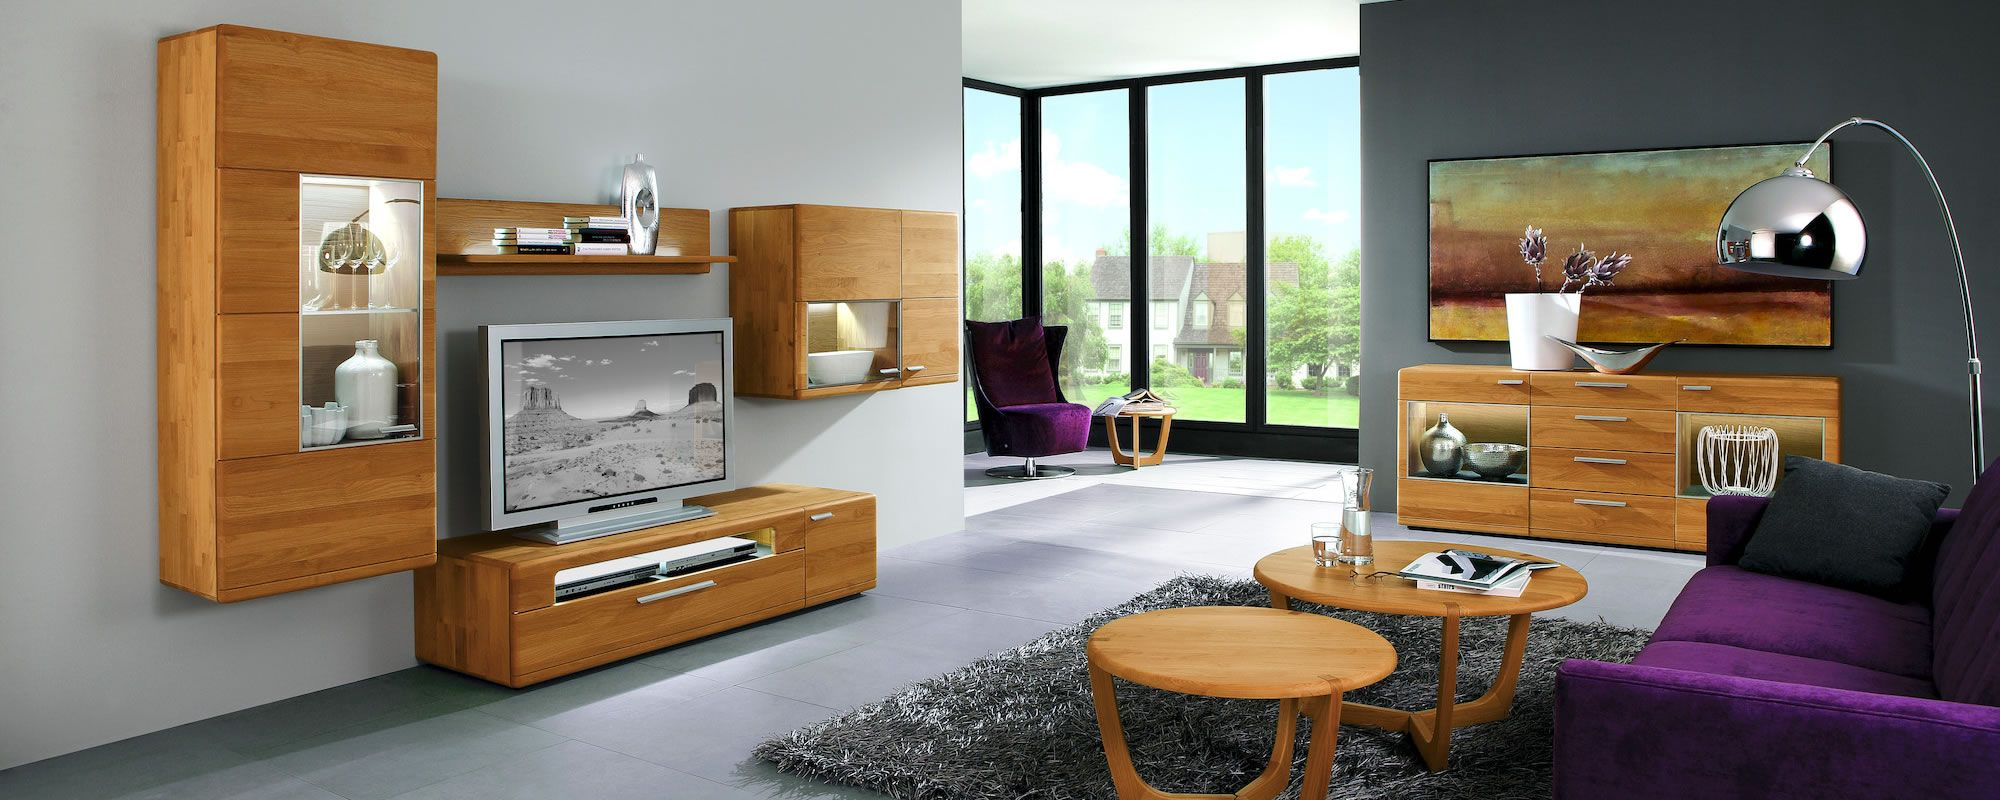 Hartmann CURVE solid wood furniture model series | Modular Euro ...